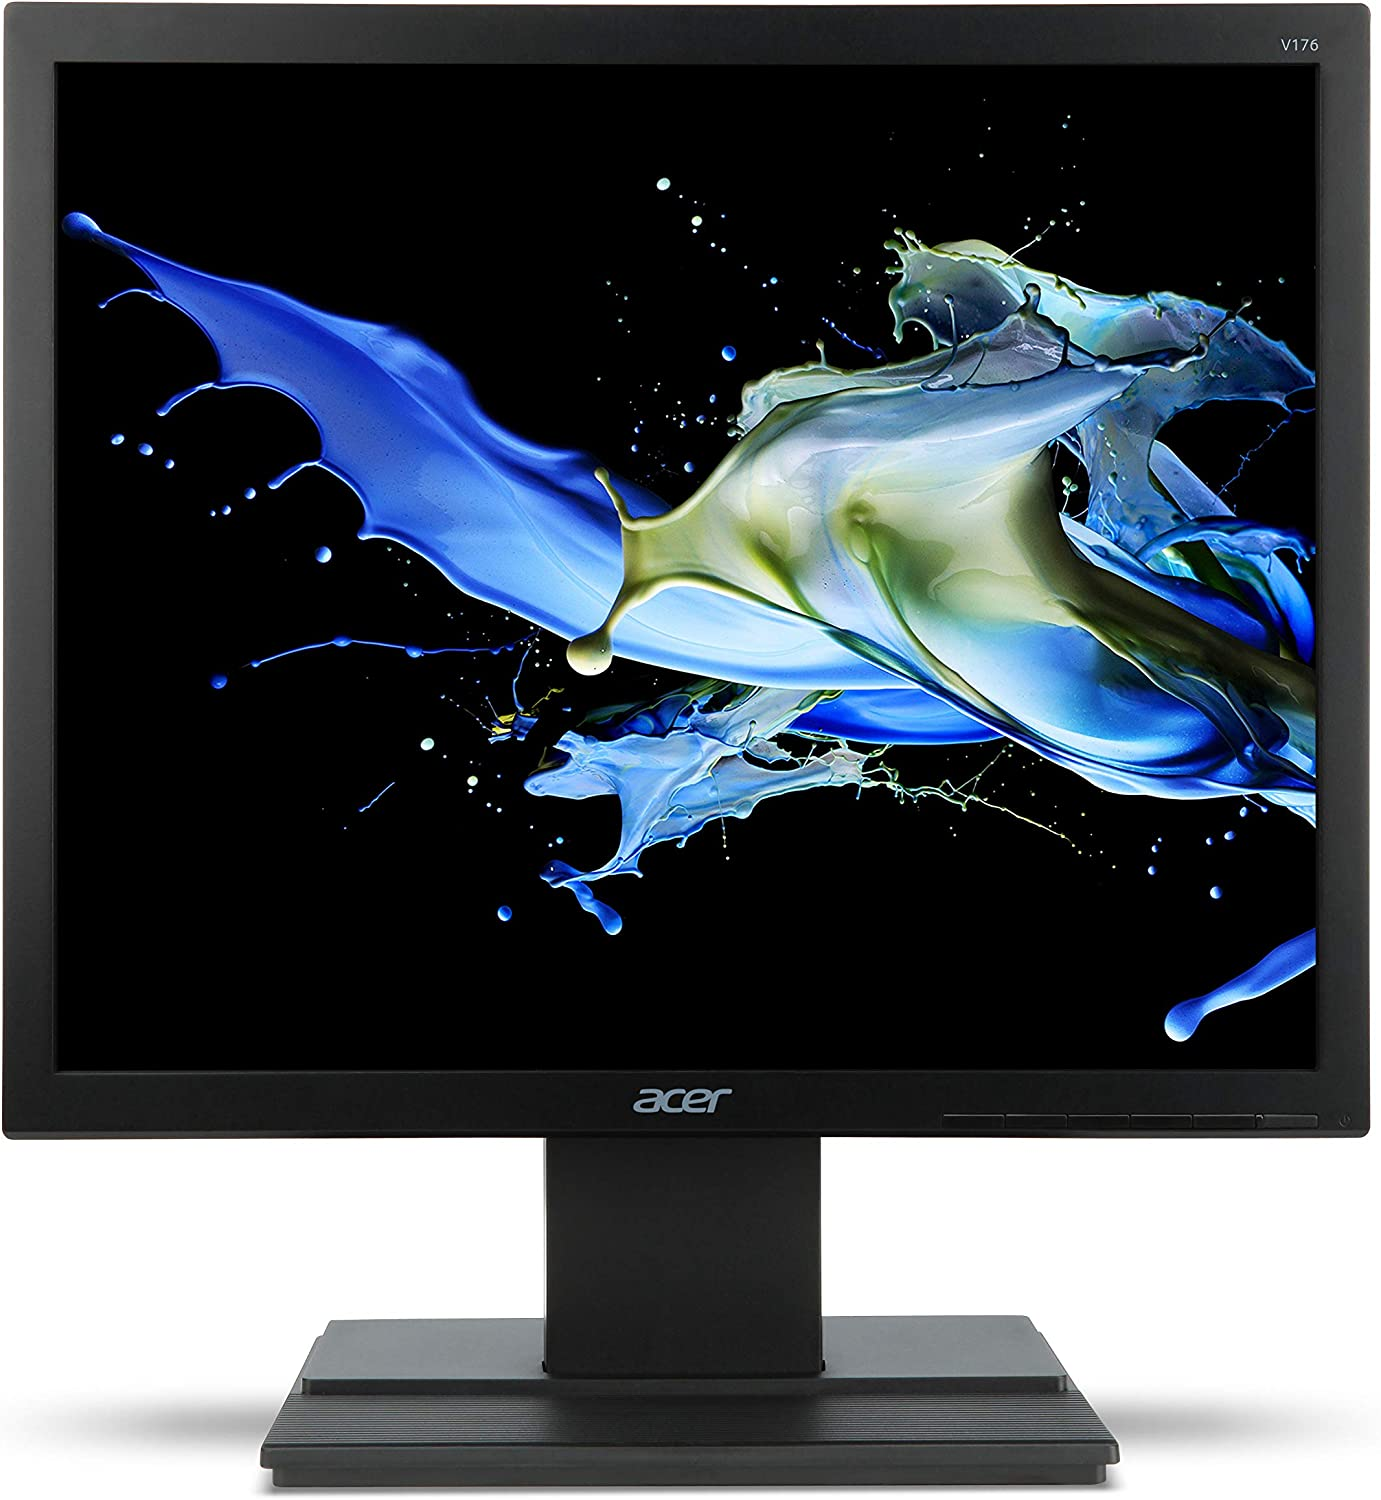 Acer Monitor LED V176Lbmd, negro: Acer: Amazon.es: Electrónica